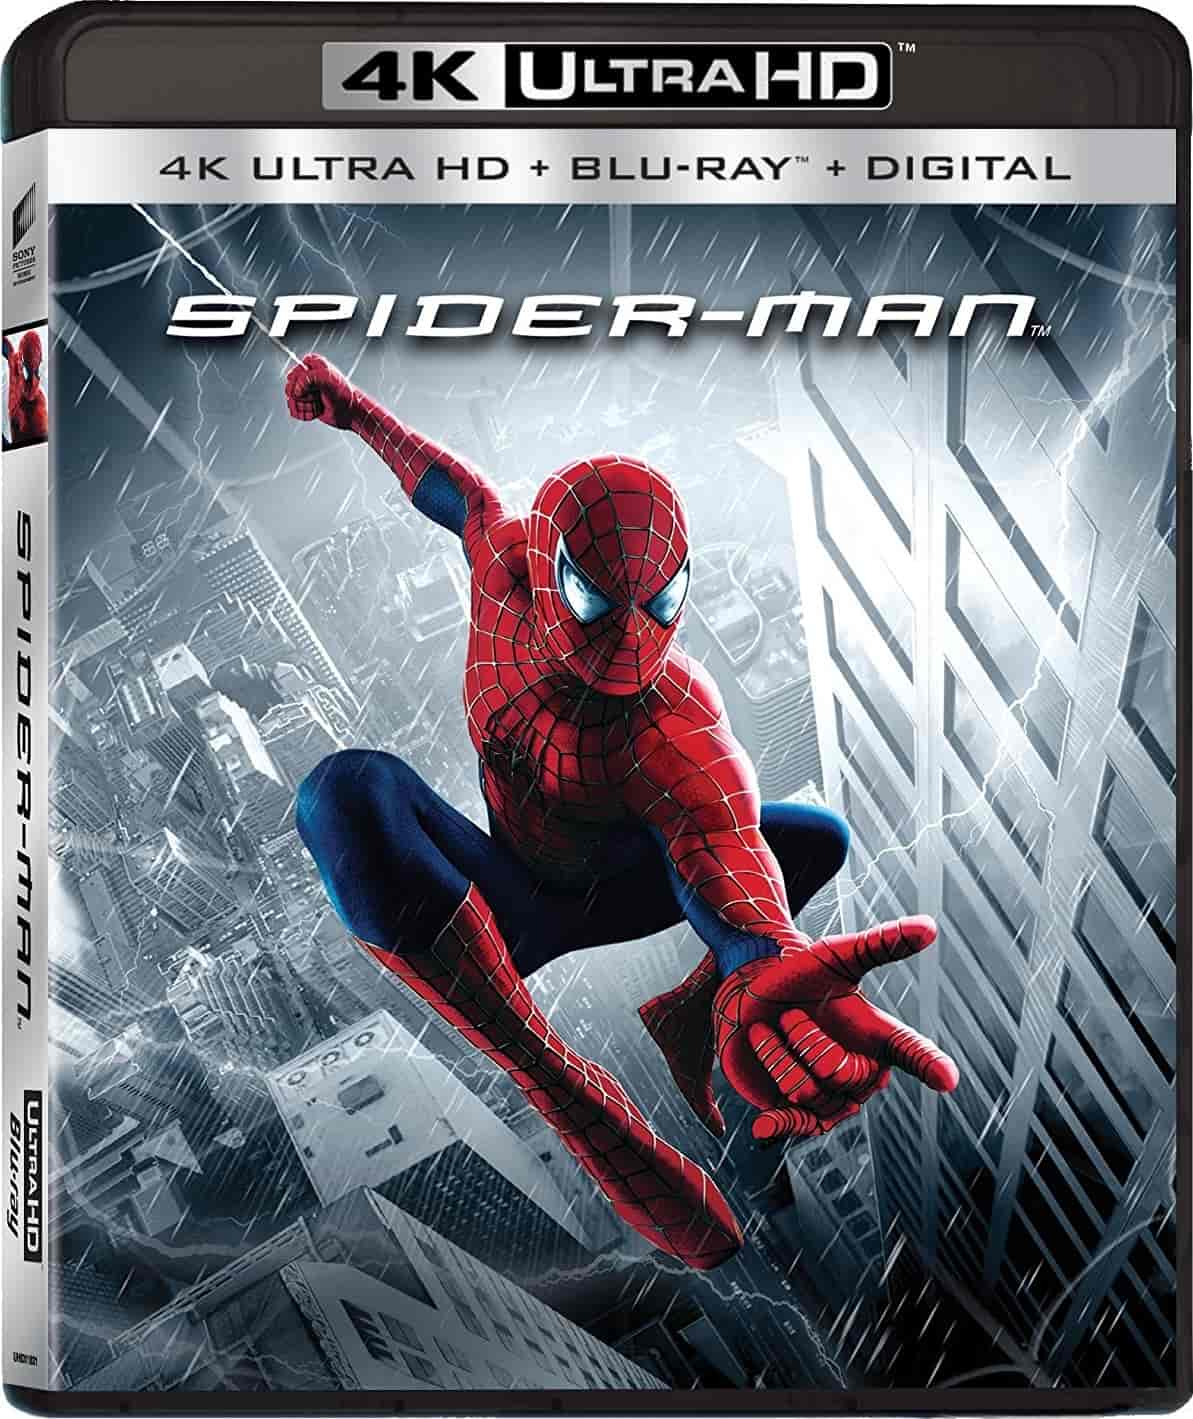 Spider-Man 4K 2002 Ultra HD 2160p